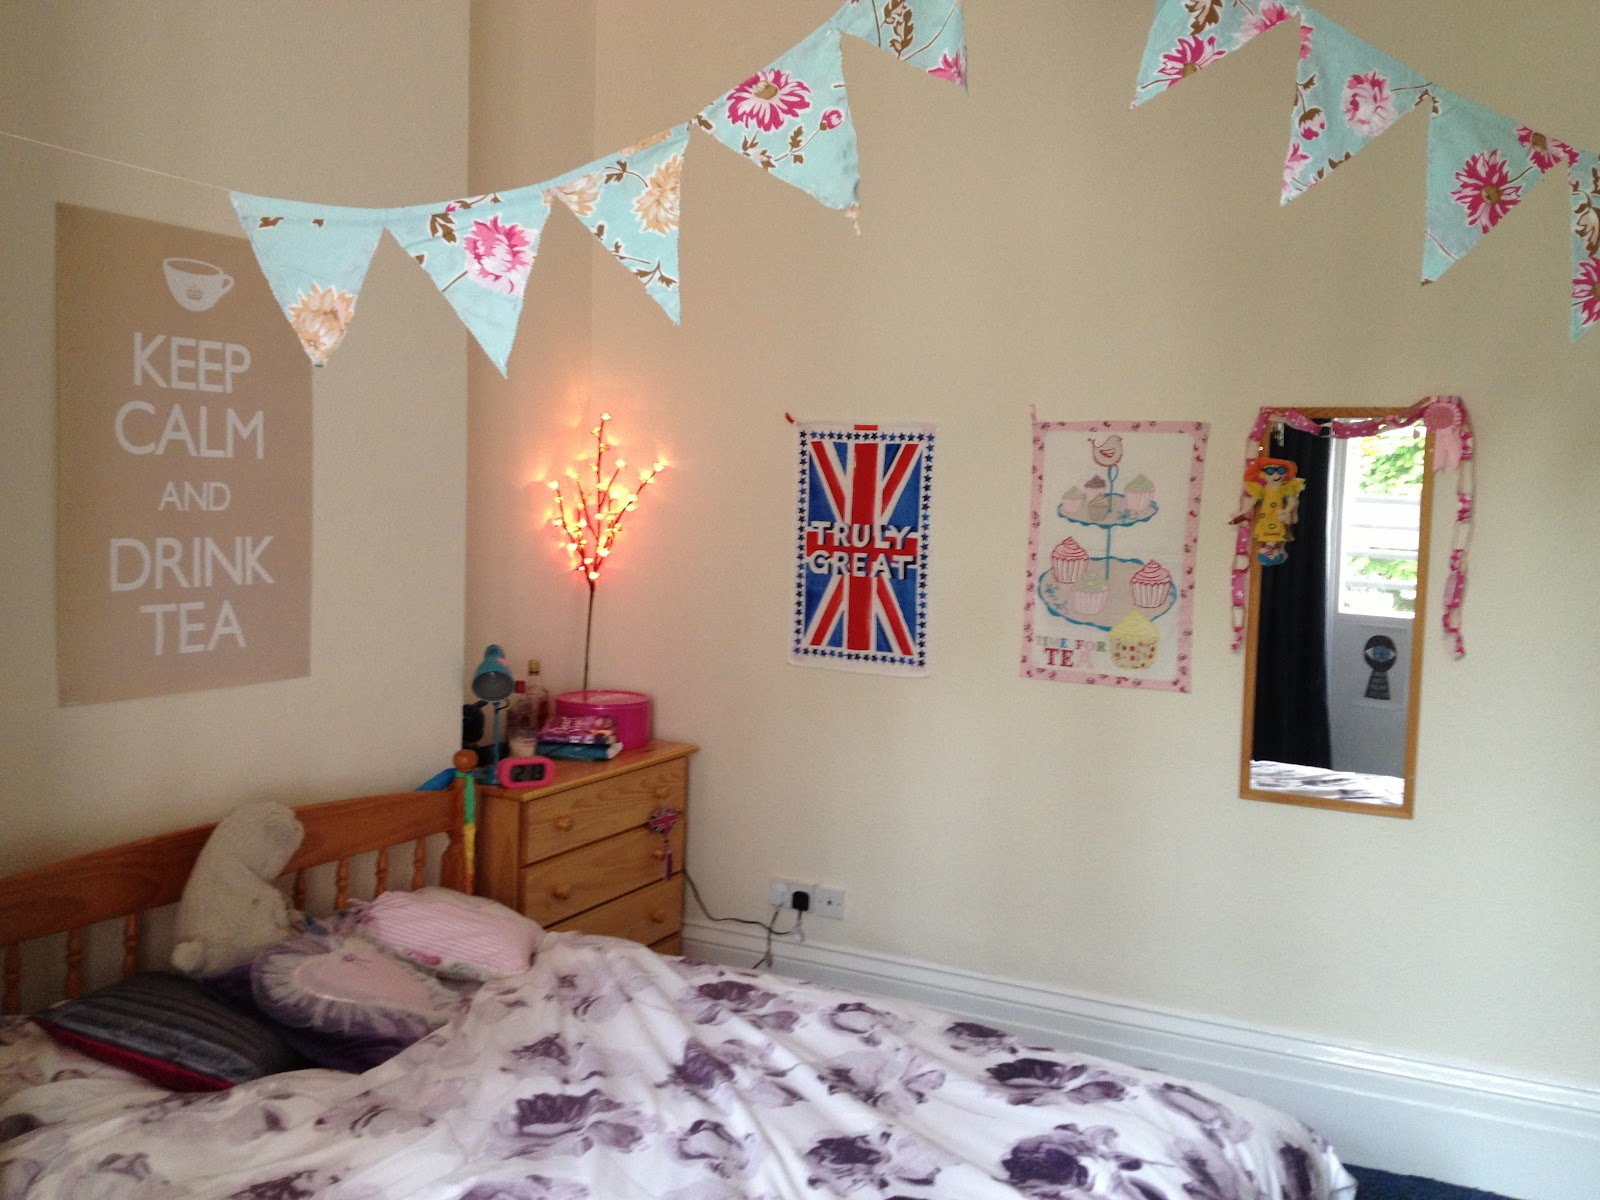 The twenty best ways to decorate your student room at uni. The twenty best ways to decorate your student room at uni